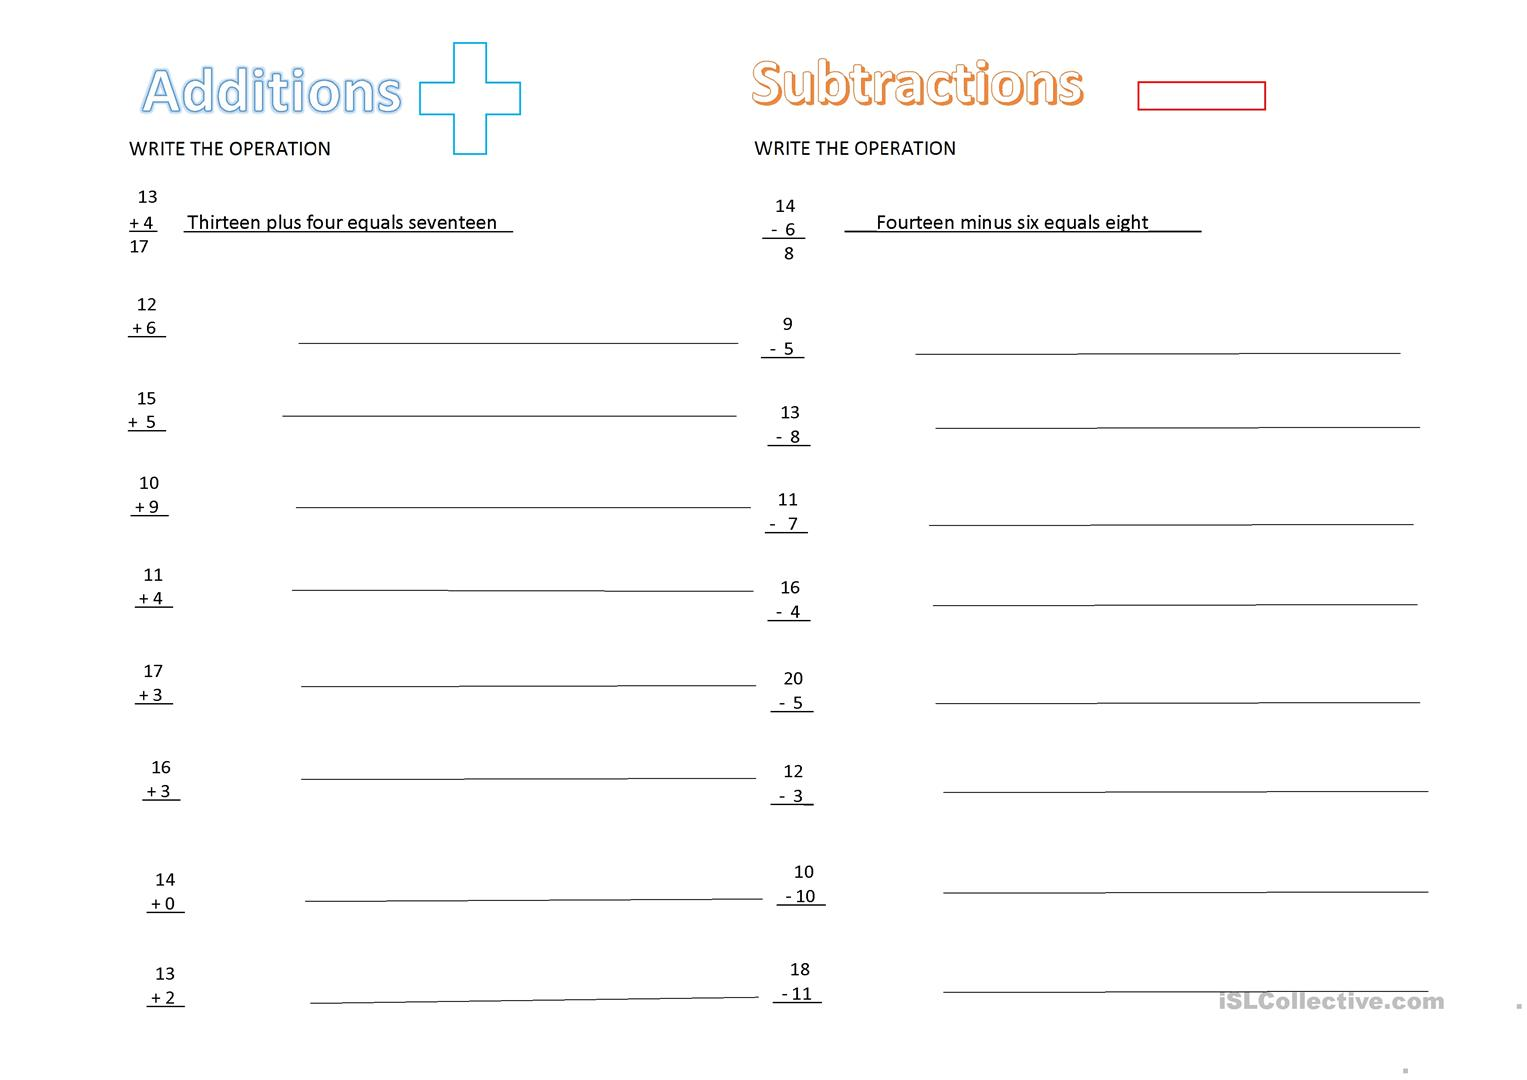 Addition And Subtraction English Esl Worksheets For Distance Learning And Physical Classrooms [ 1080 x 1527 Pixel ]